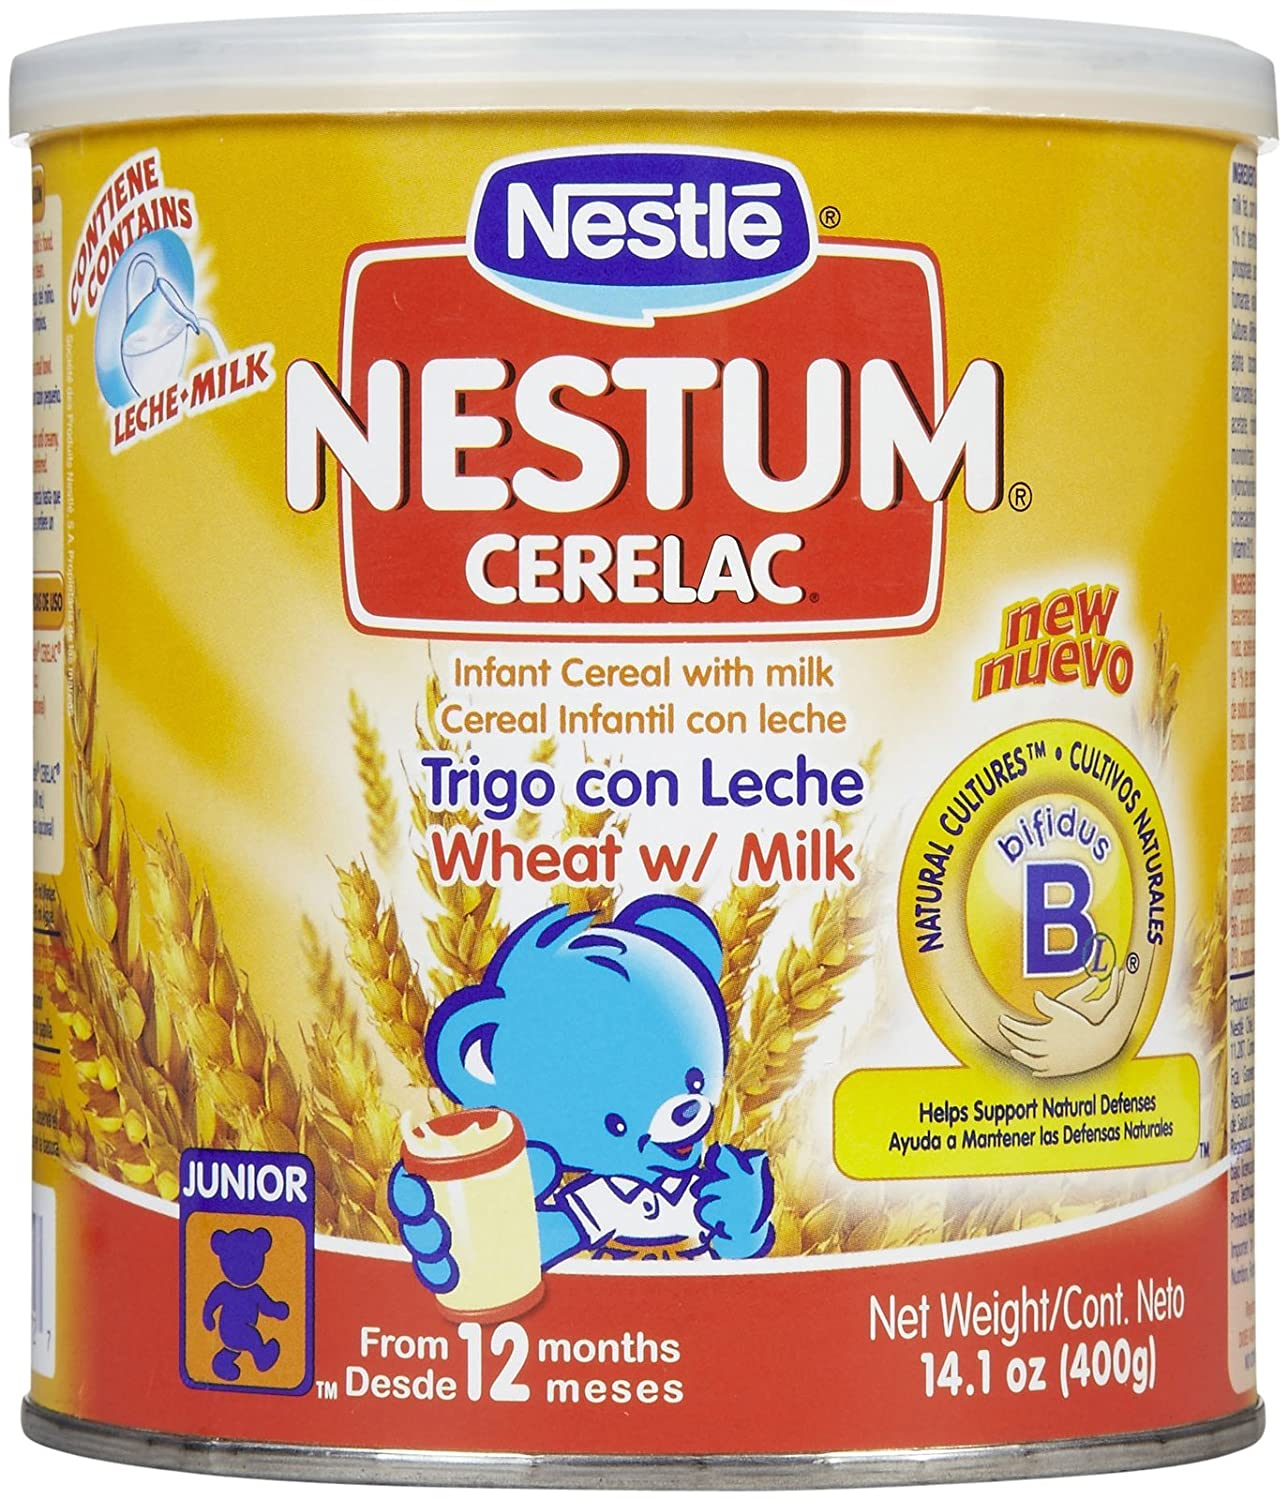 Nestum Baby Outstanding Cereal Mail order - oz 14.1 Wheat Cerelac